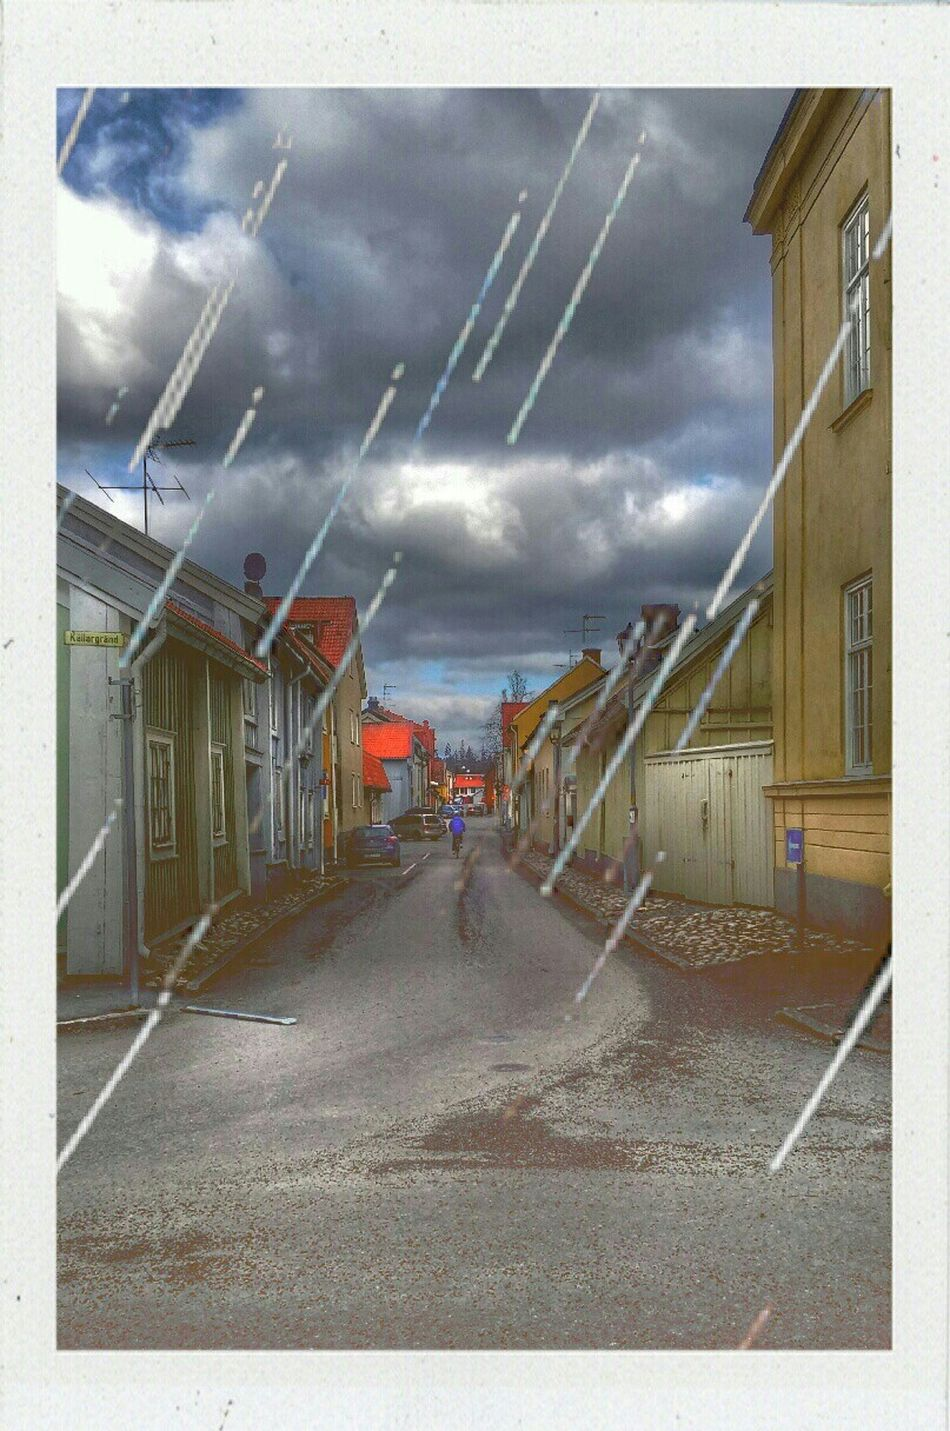 Rainy Days cloud - sky Building Exterior Sky Road Built Structure Streetphotography EyeEm Best Shots Best Of EyeEm Scenics Gripsholm Cold Temperature